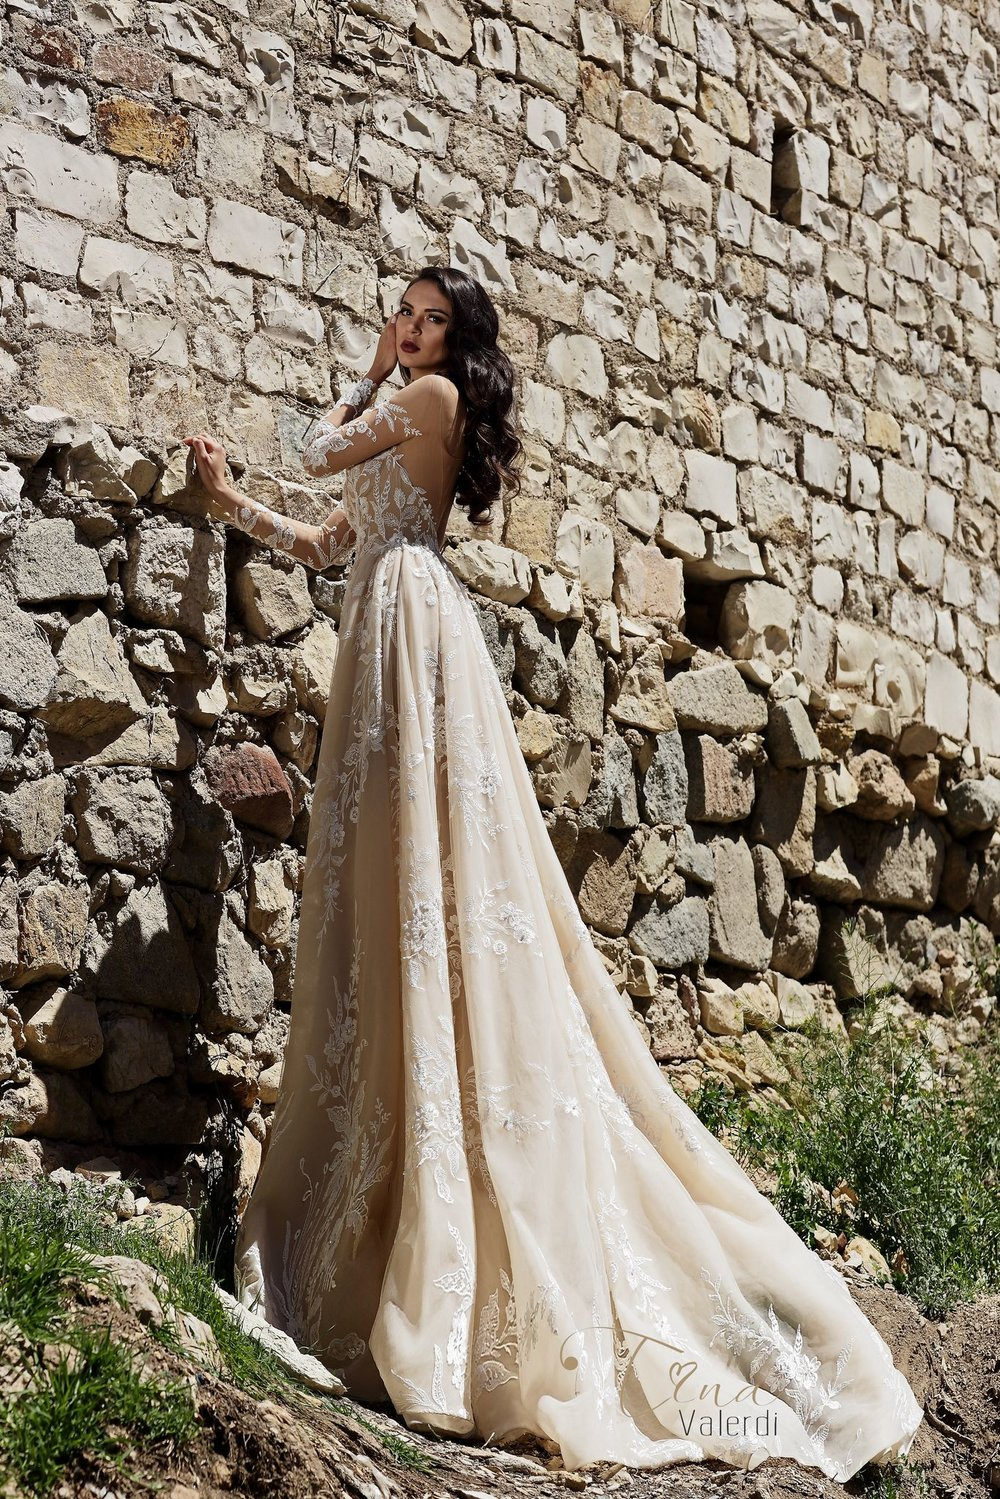 FIDELIA wedding dress by TINA VALERDI